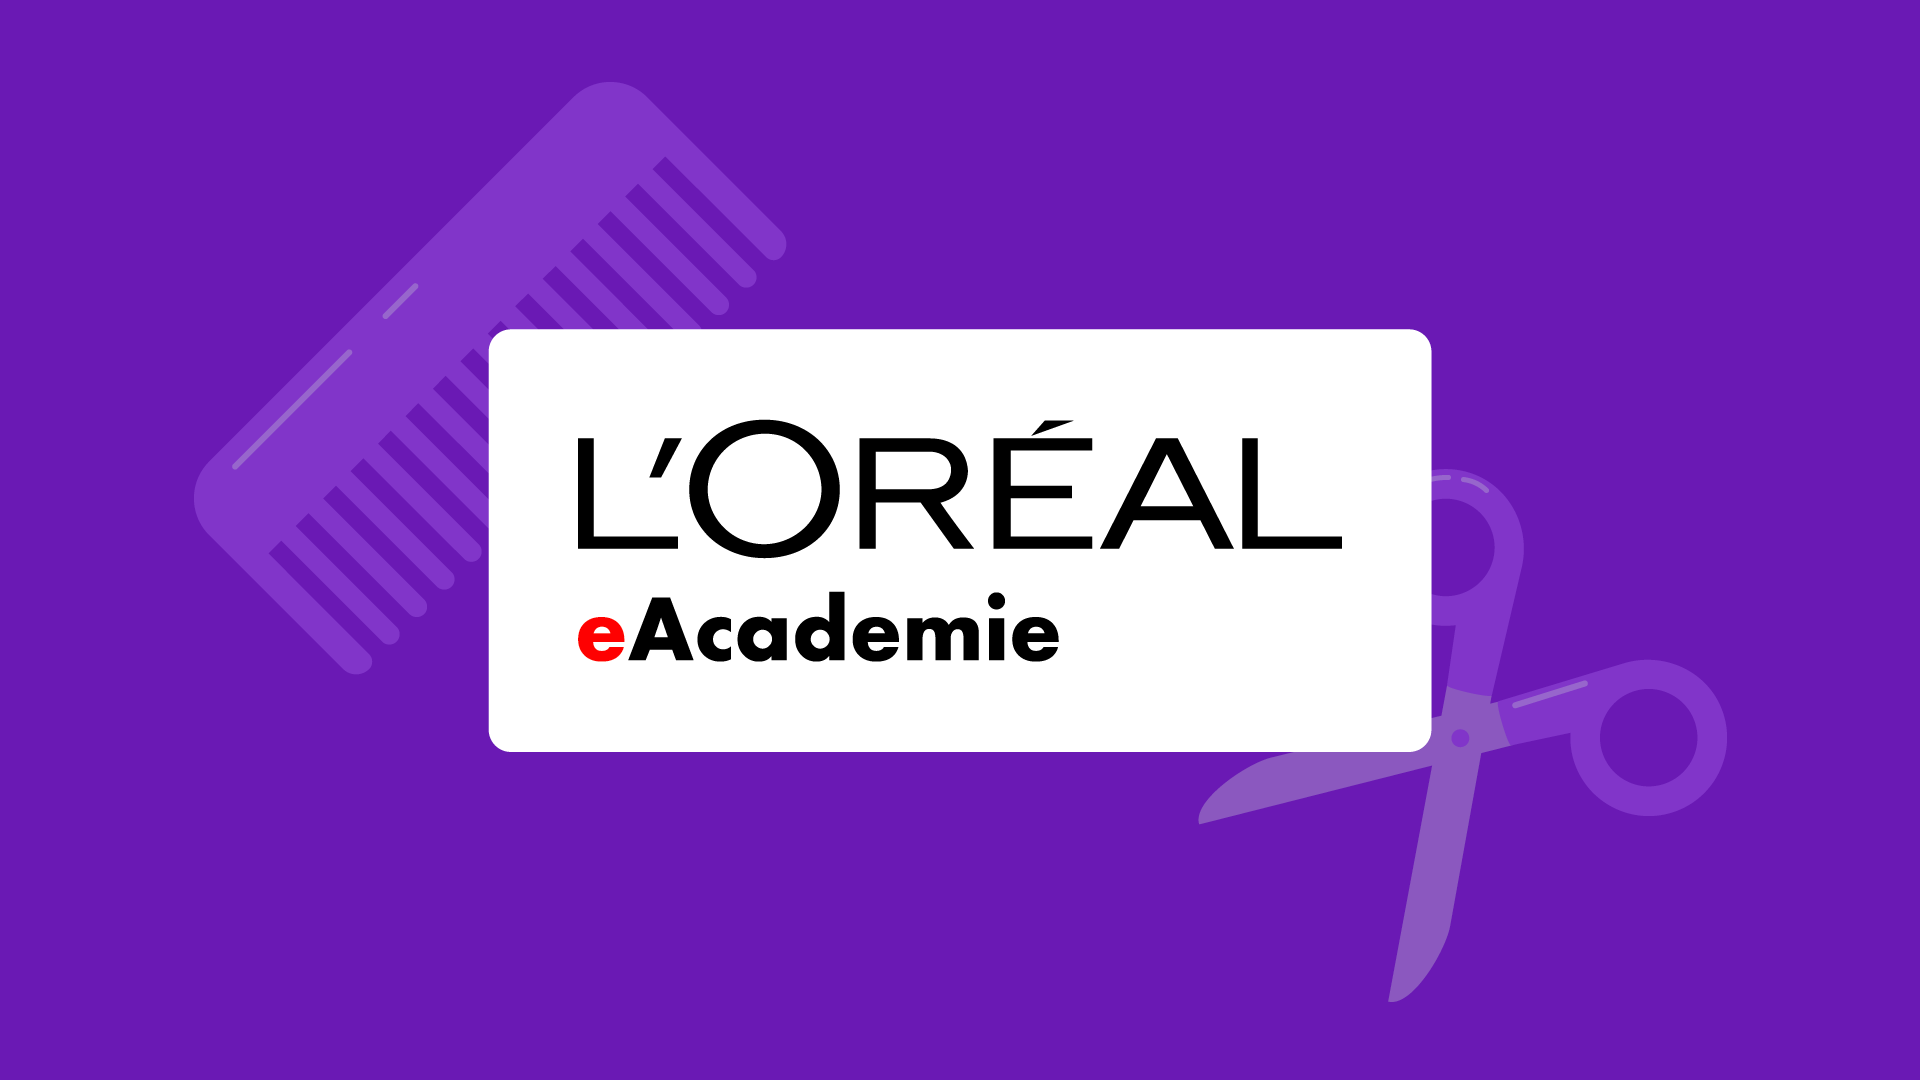 L'Oréal eAcademie - Developing the beauty industry's largest B2B portal by Evrone